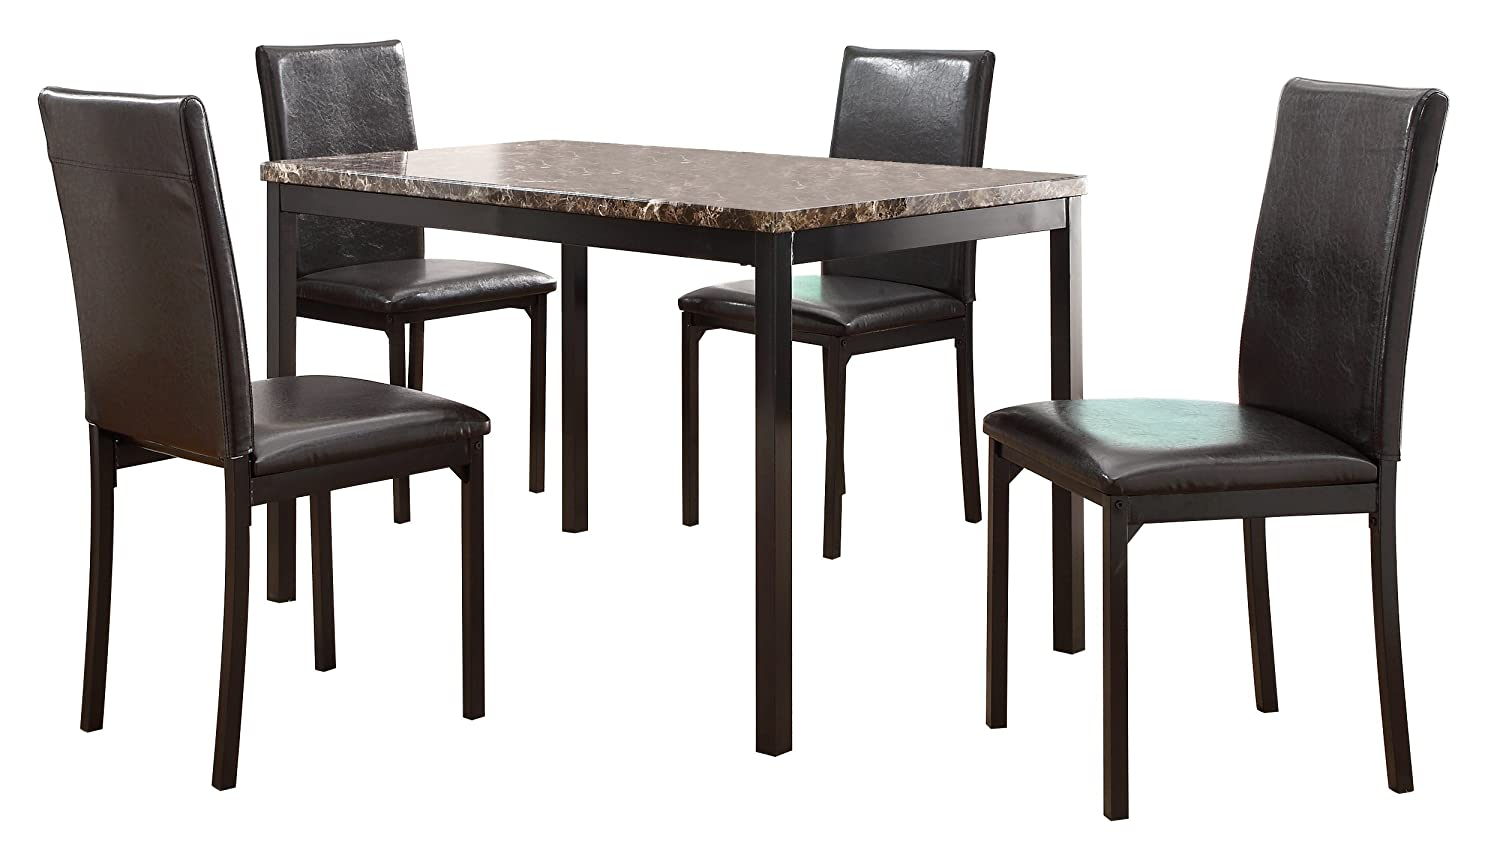 Amazon.com Homelegance Tempe 5-Piece Metal Dinette Set Laminated Faux Marble Top Kitchen u0026 Dining  sc 1 st  Amazon.com & Amazon.com: Homelegance Tempe 5-Piece Metal Dinette Set Laminated ...